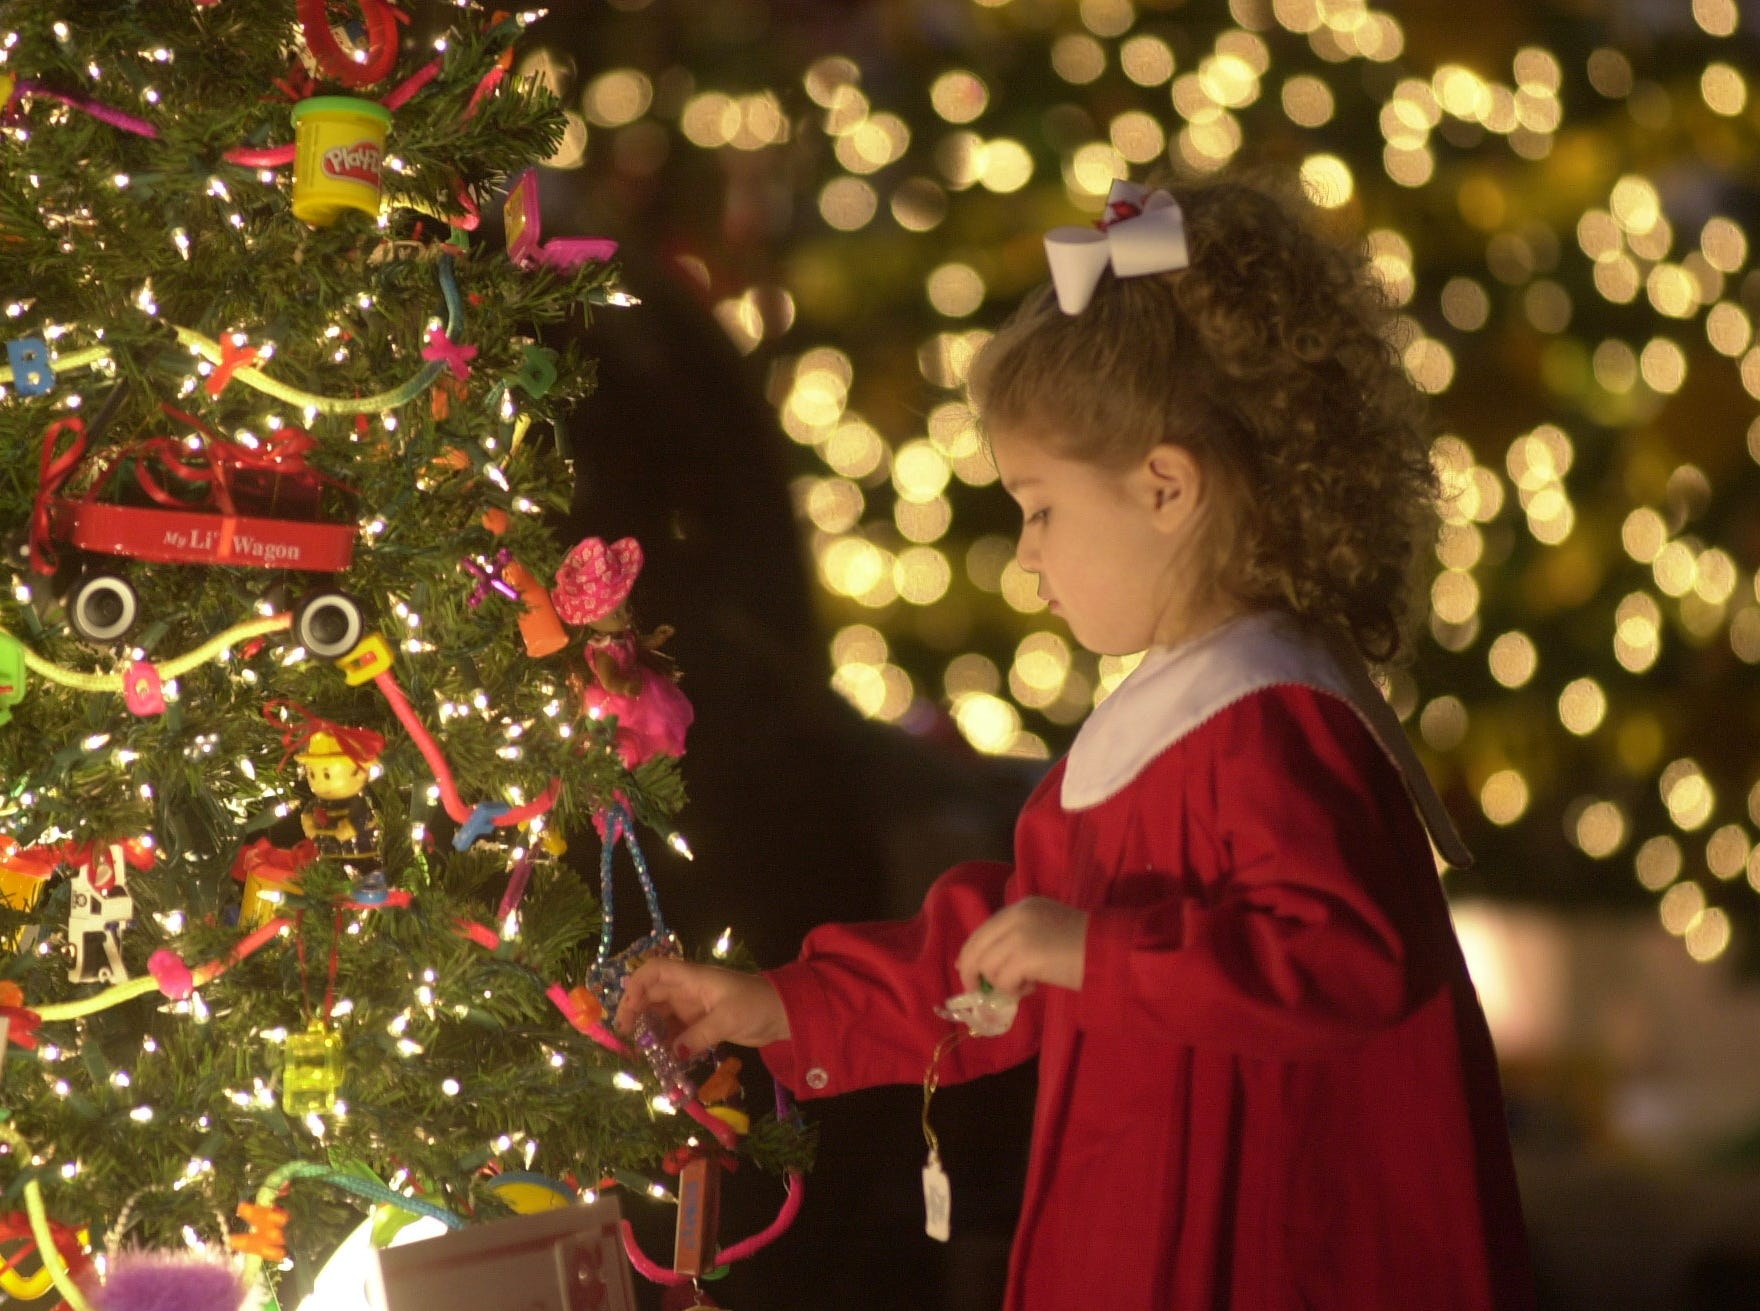 Megan Strader, 3, of Morristown plays with some ornaments on a Christmas tree donated by the Fair Garden Family and Community Service Center while attending the 2004 Fantasy of Trees at the Knoxville Convention Center Saturday.  JEFF ADKINS/NEWS SENTINEL STAFF